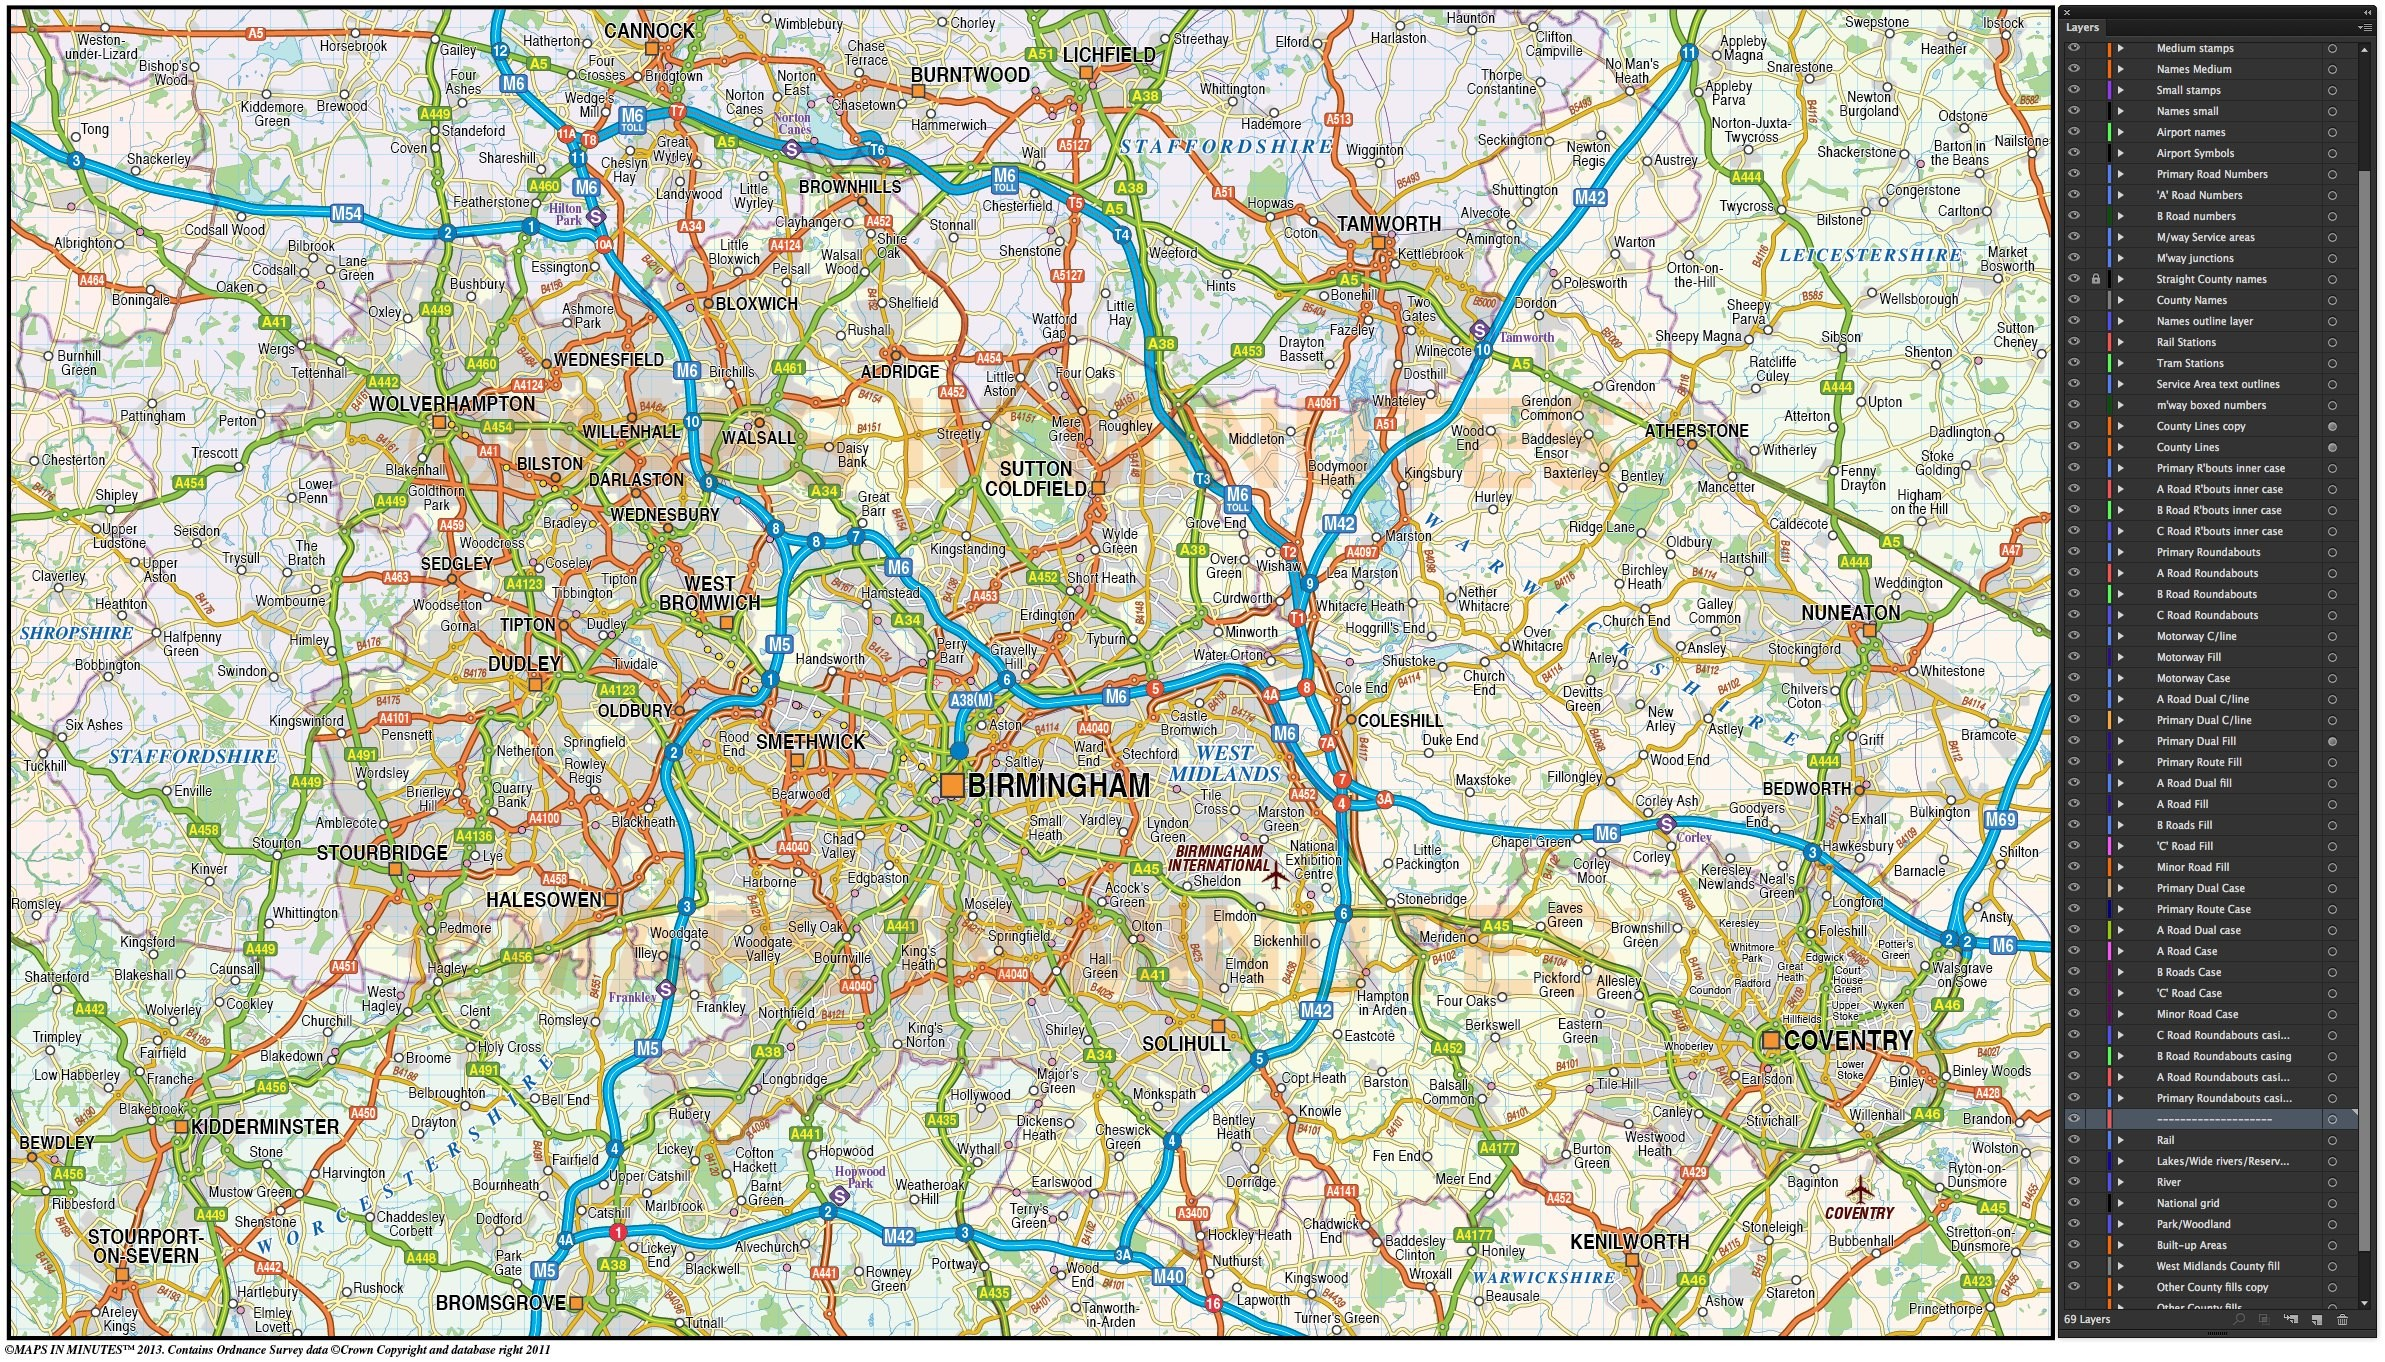 Loss Of Use Coverage >> Digital vector map of Greater Birmingham-Coventry @250k scale in illustrator editable format ...